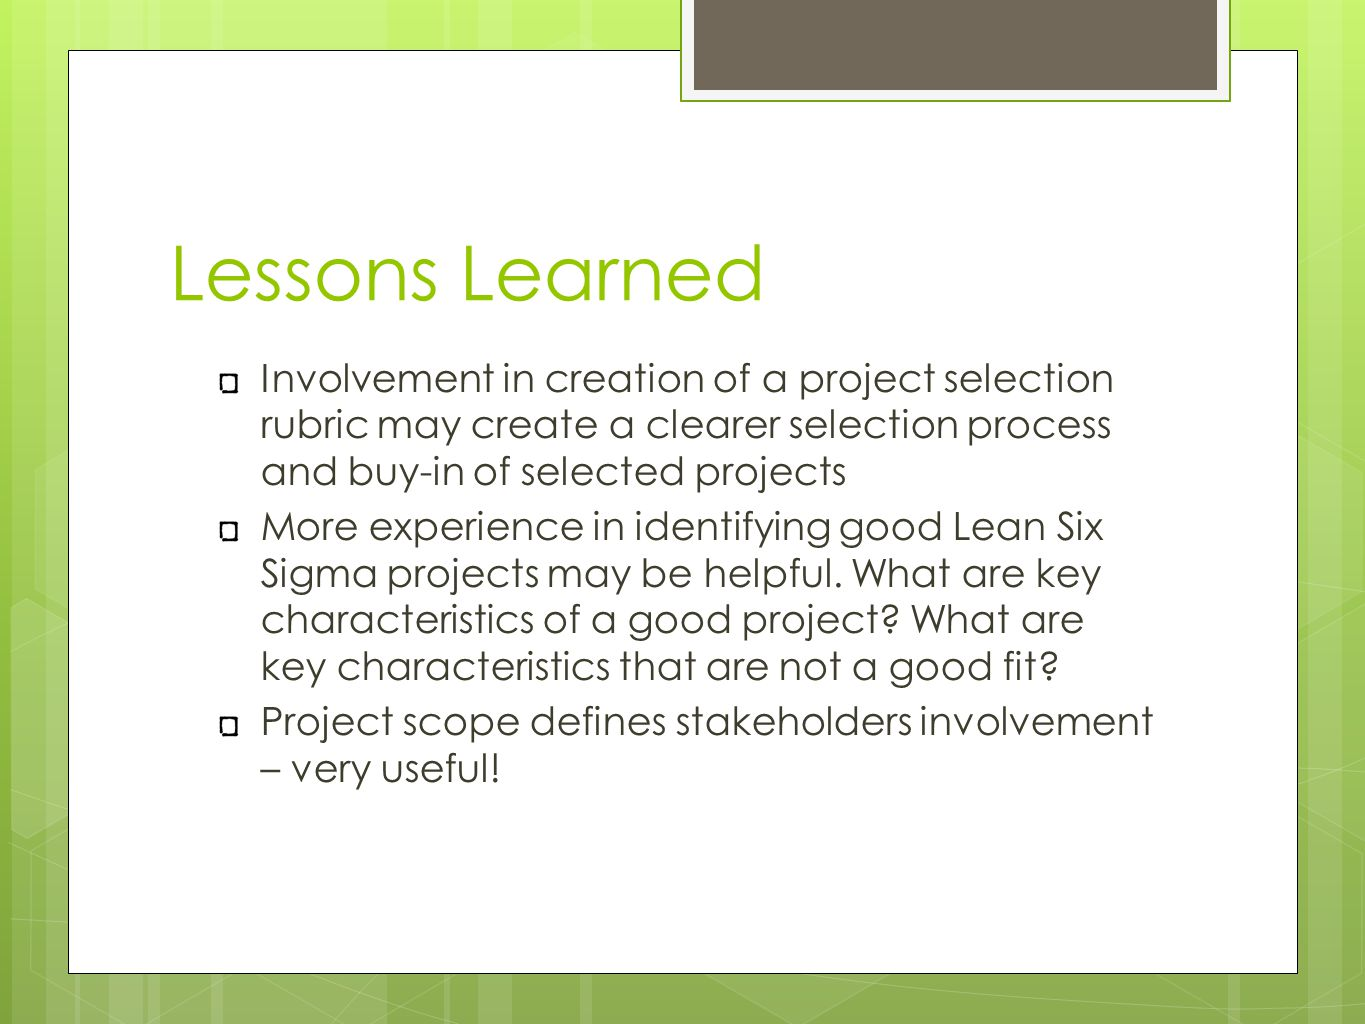 Lessons Learned Involvement in creation of a project selection rubric may create a clearer selection process and buy-in of selected projects More experience in identifying good Lean Six Sigma projects may be helpful.